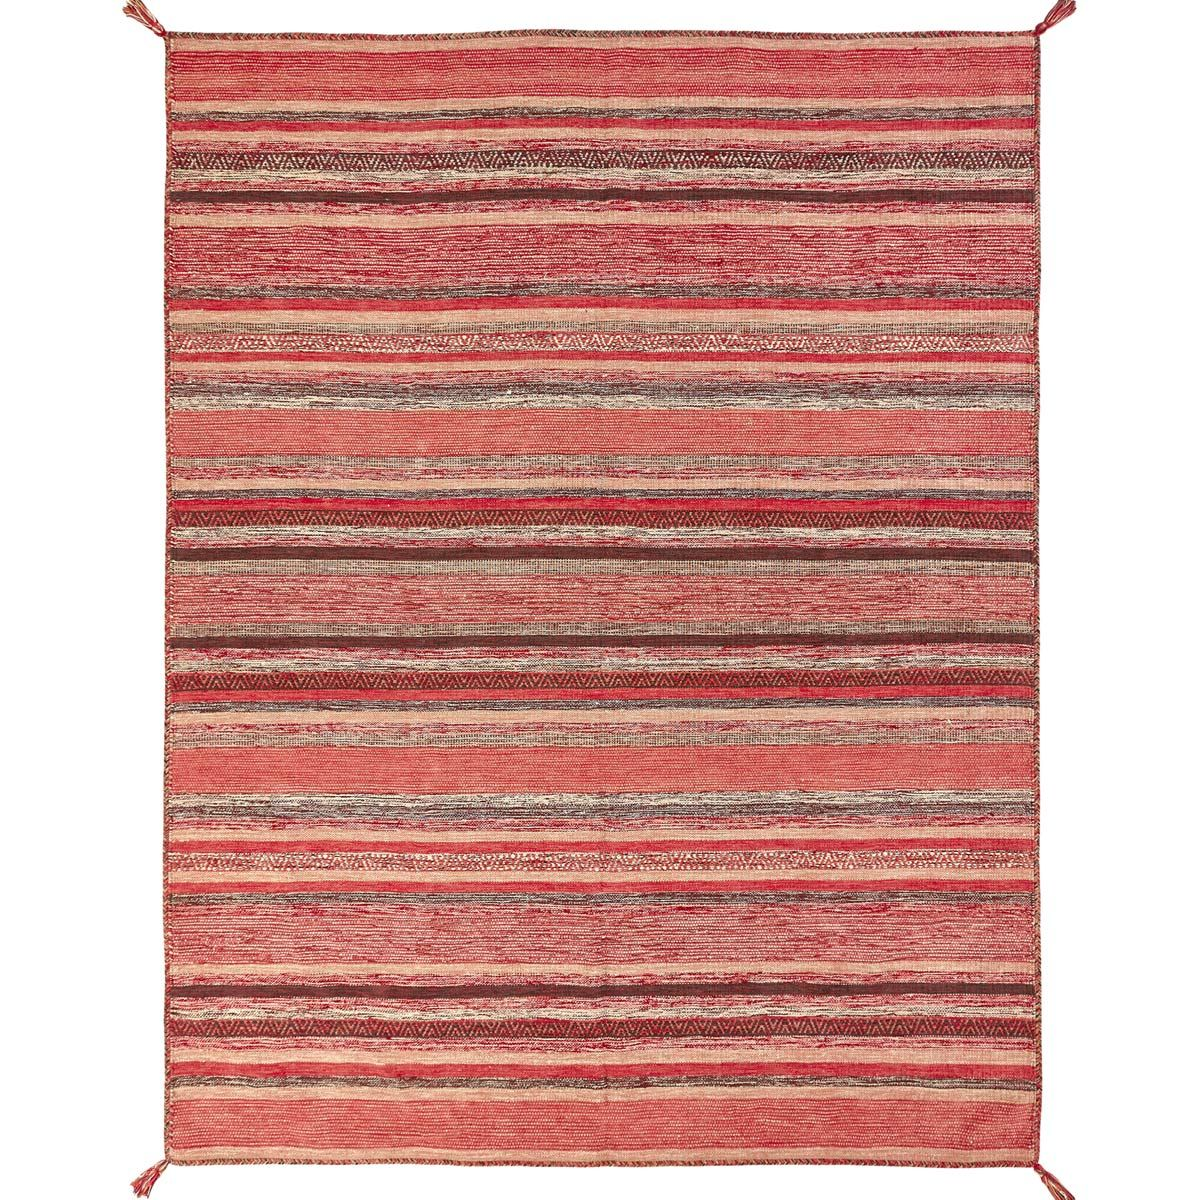 Portales Stripes Rug - 4 x 6 - OUT OF STOCK UNTIL 7/8/2021